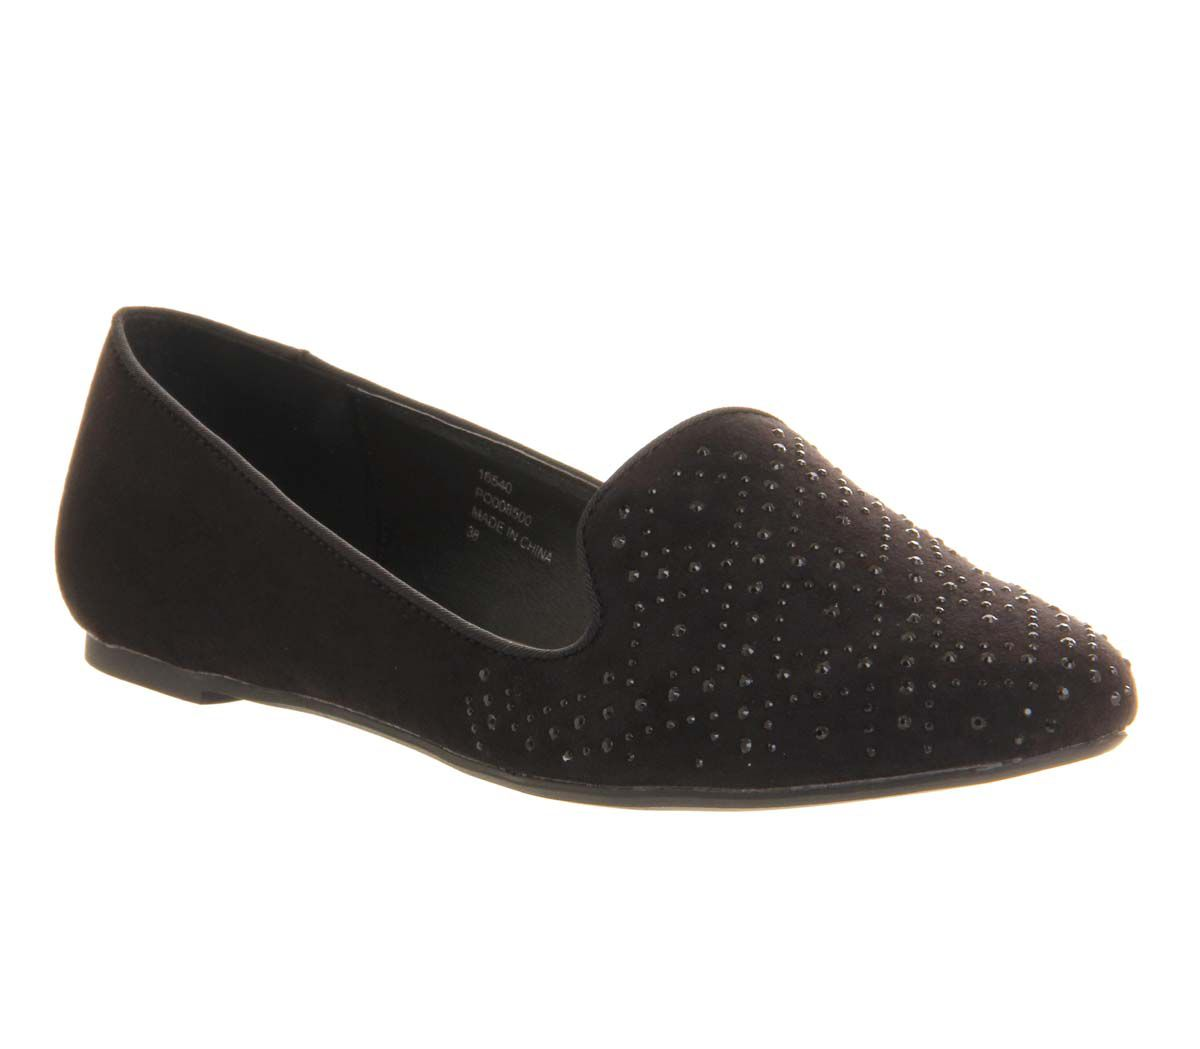 Kozy diamante round toe slipper shoes